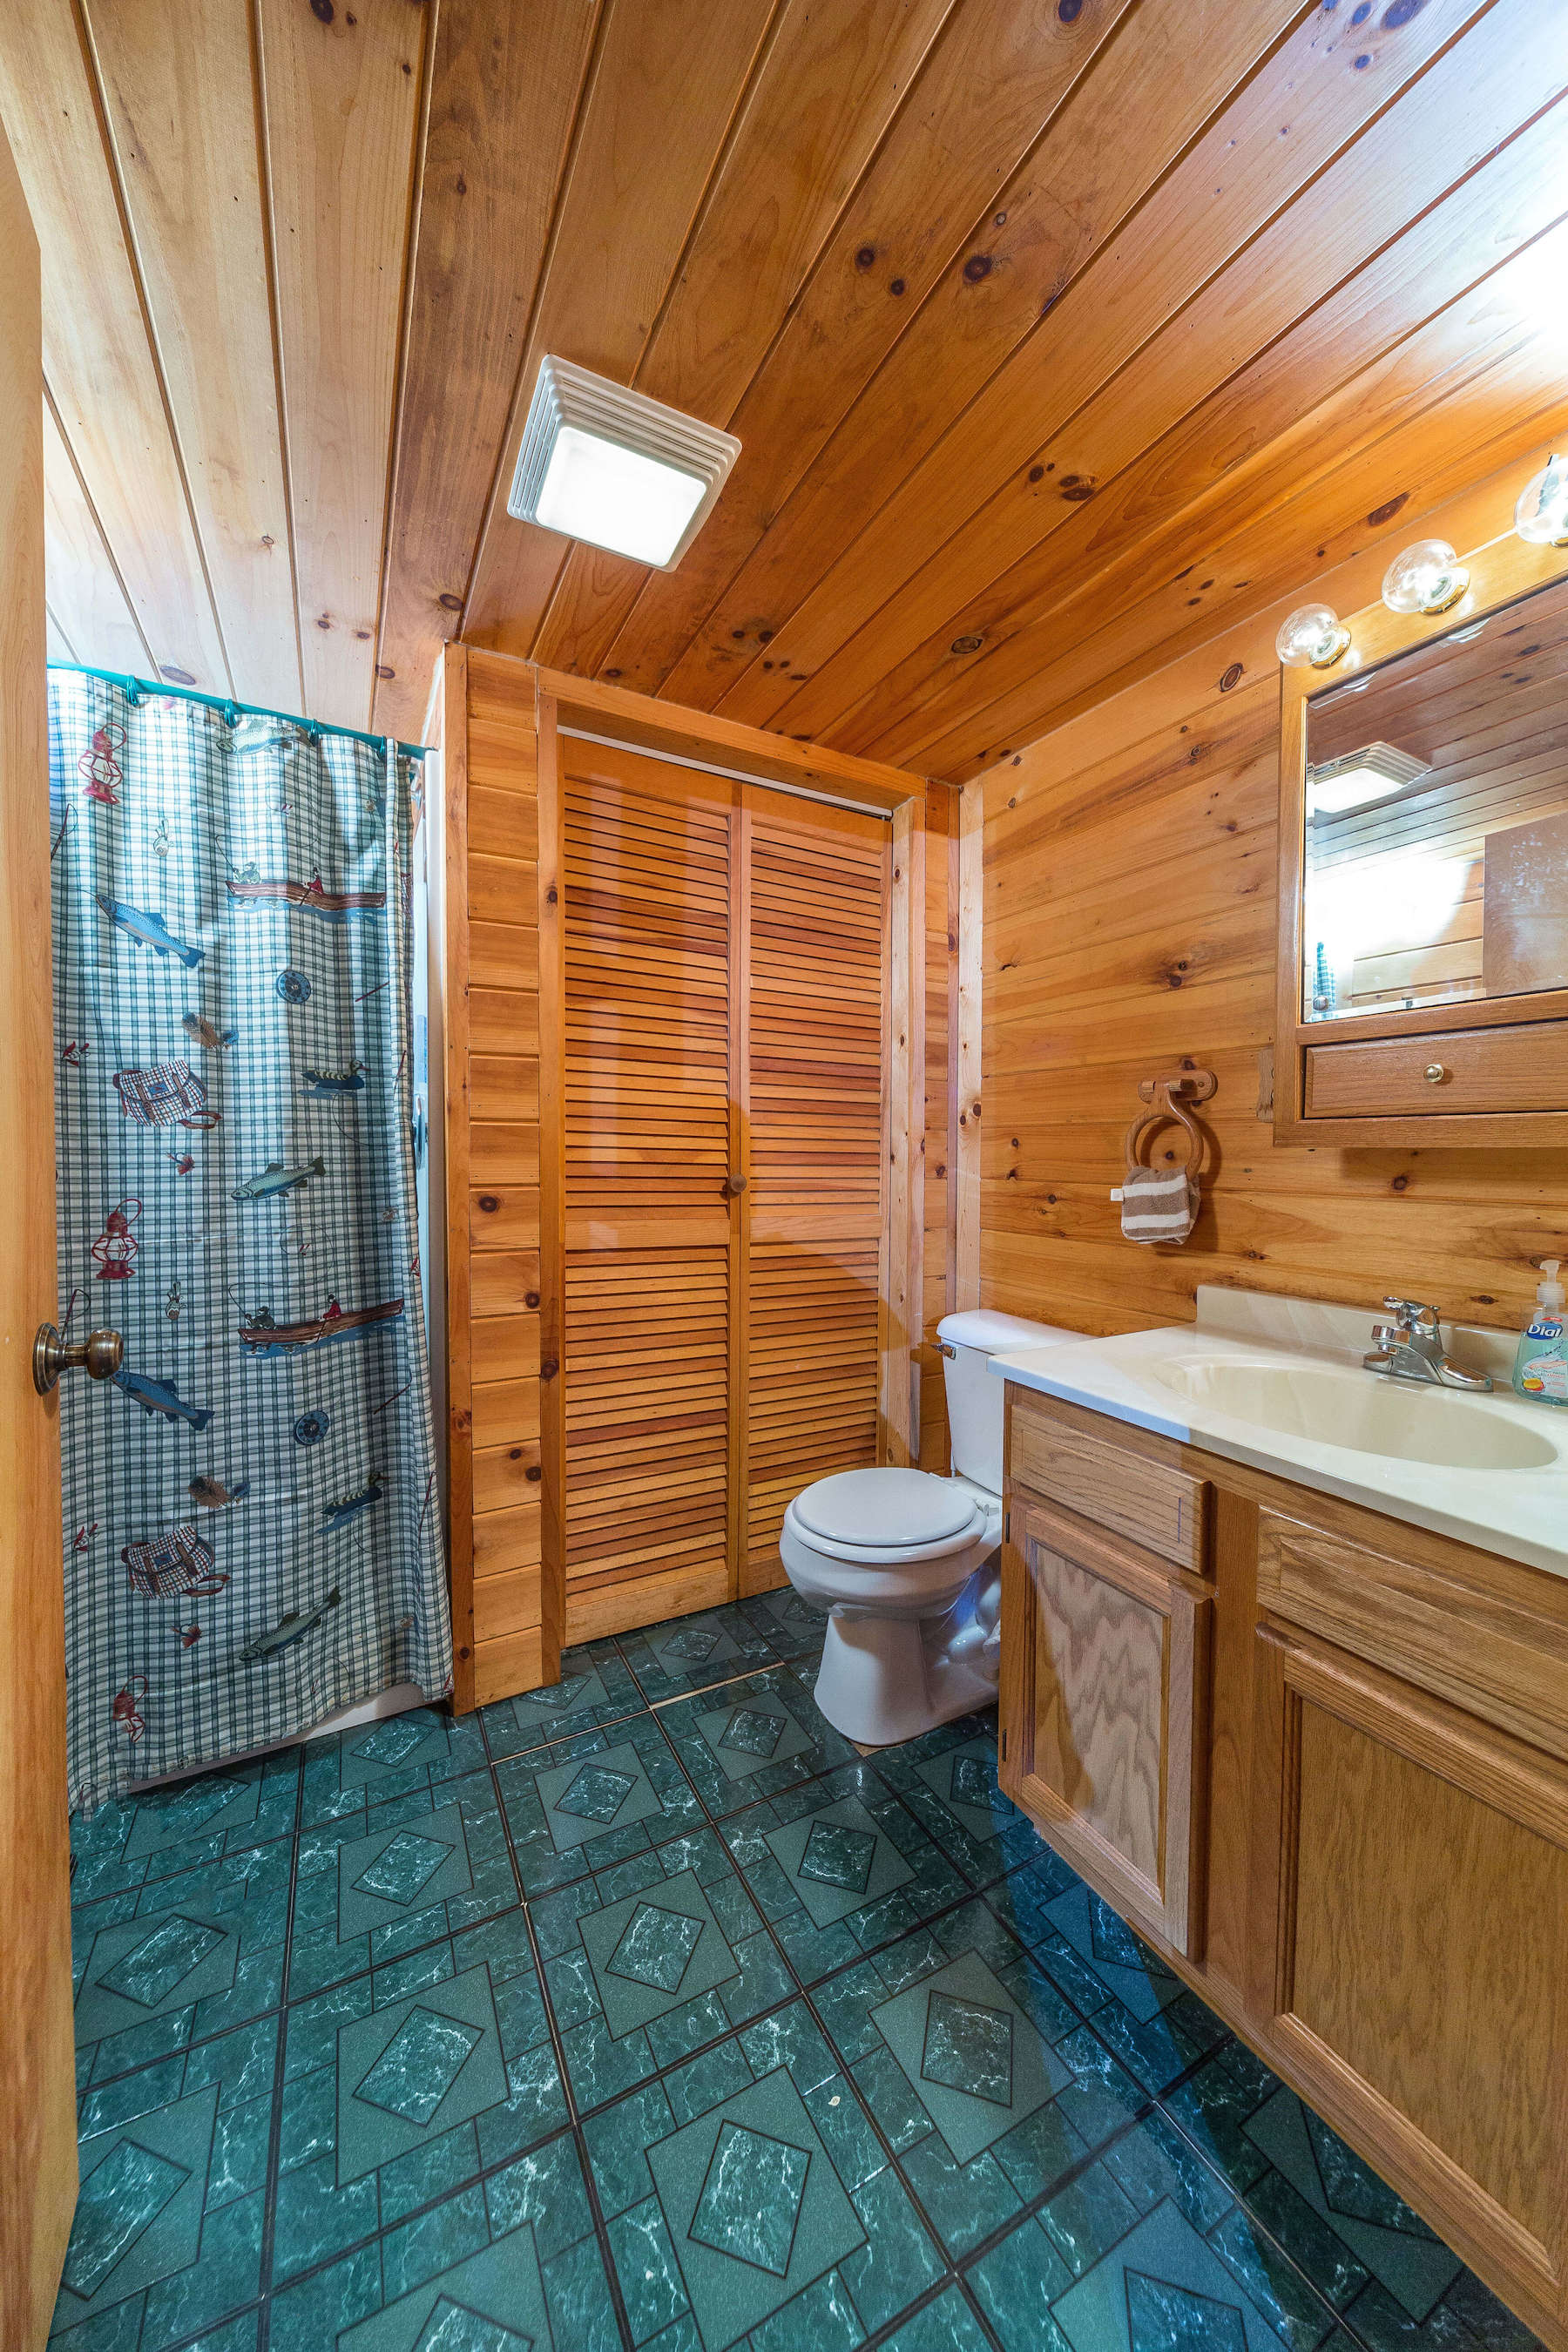 cabins this waterfalls ohio to summer and close the you arrow pin can galore in curbed hiking trails holes for rent swimming phillyclockmenumore poconos tiny